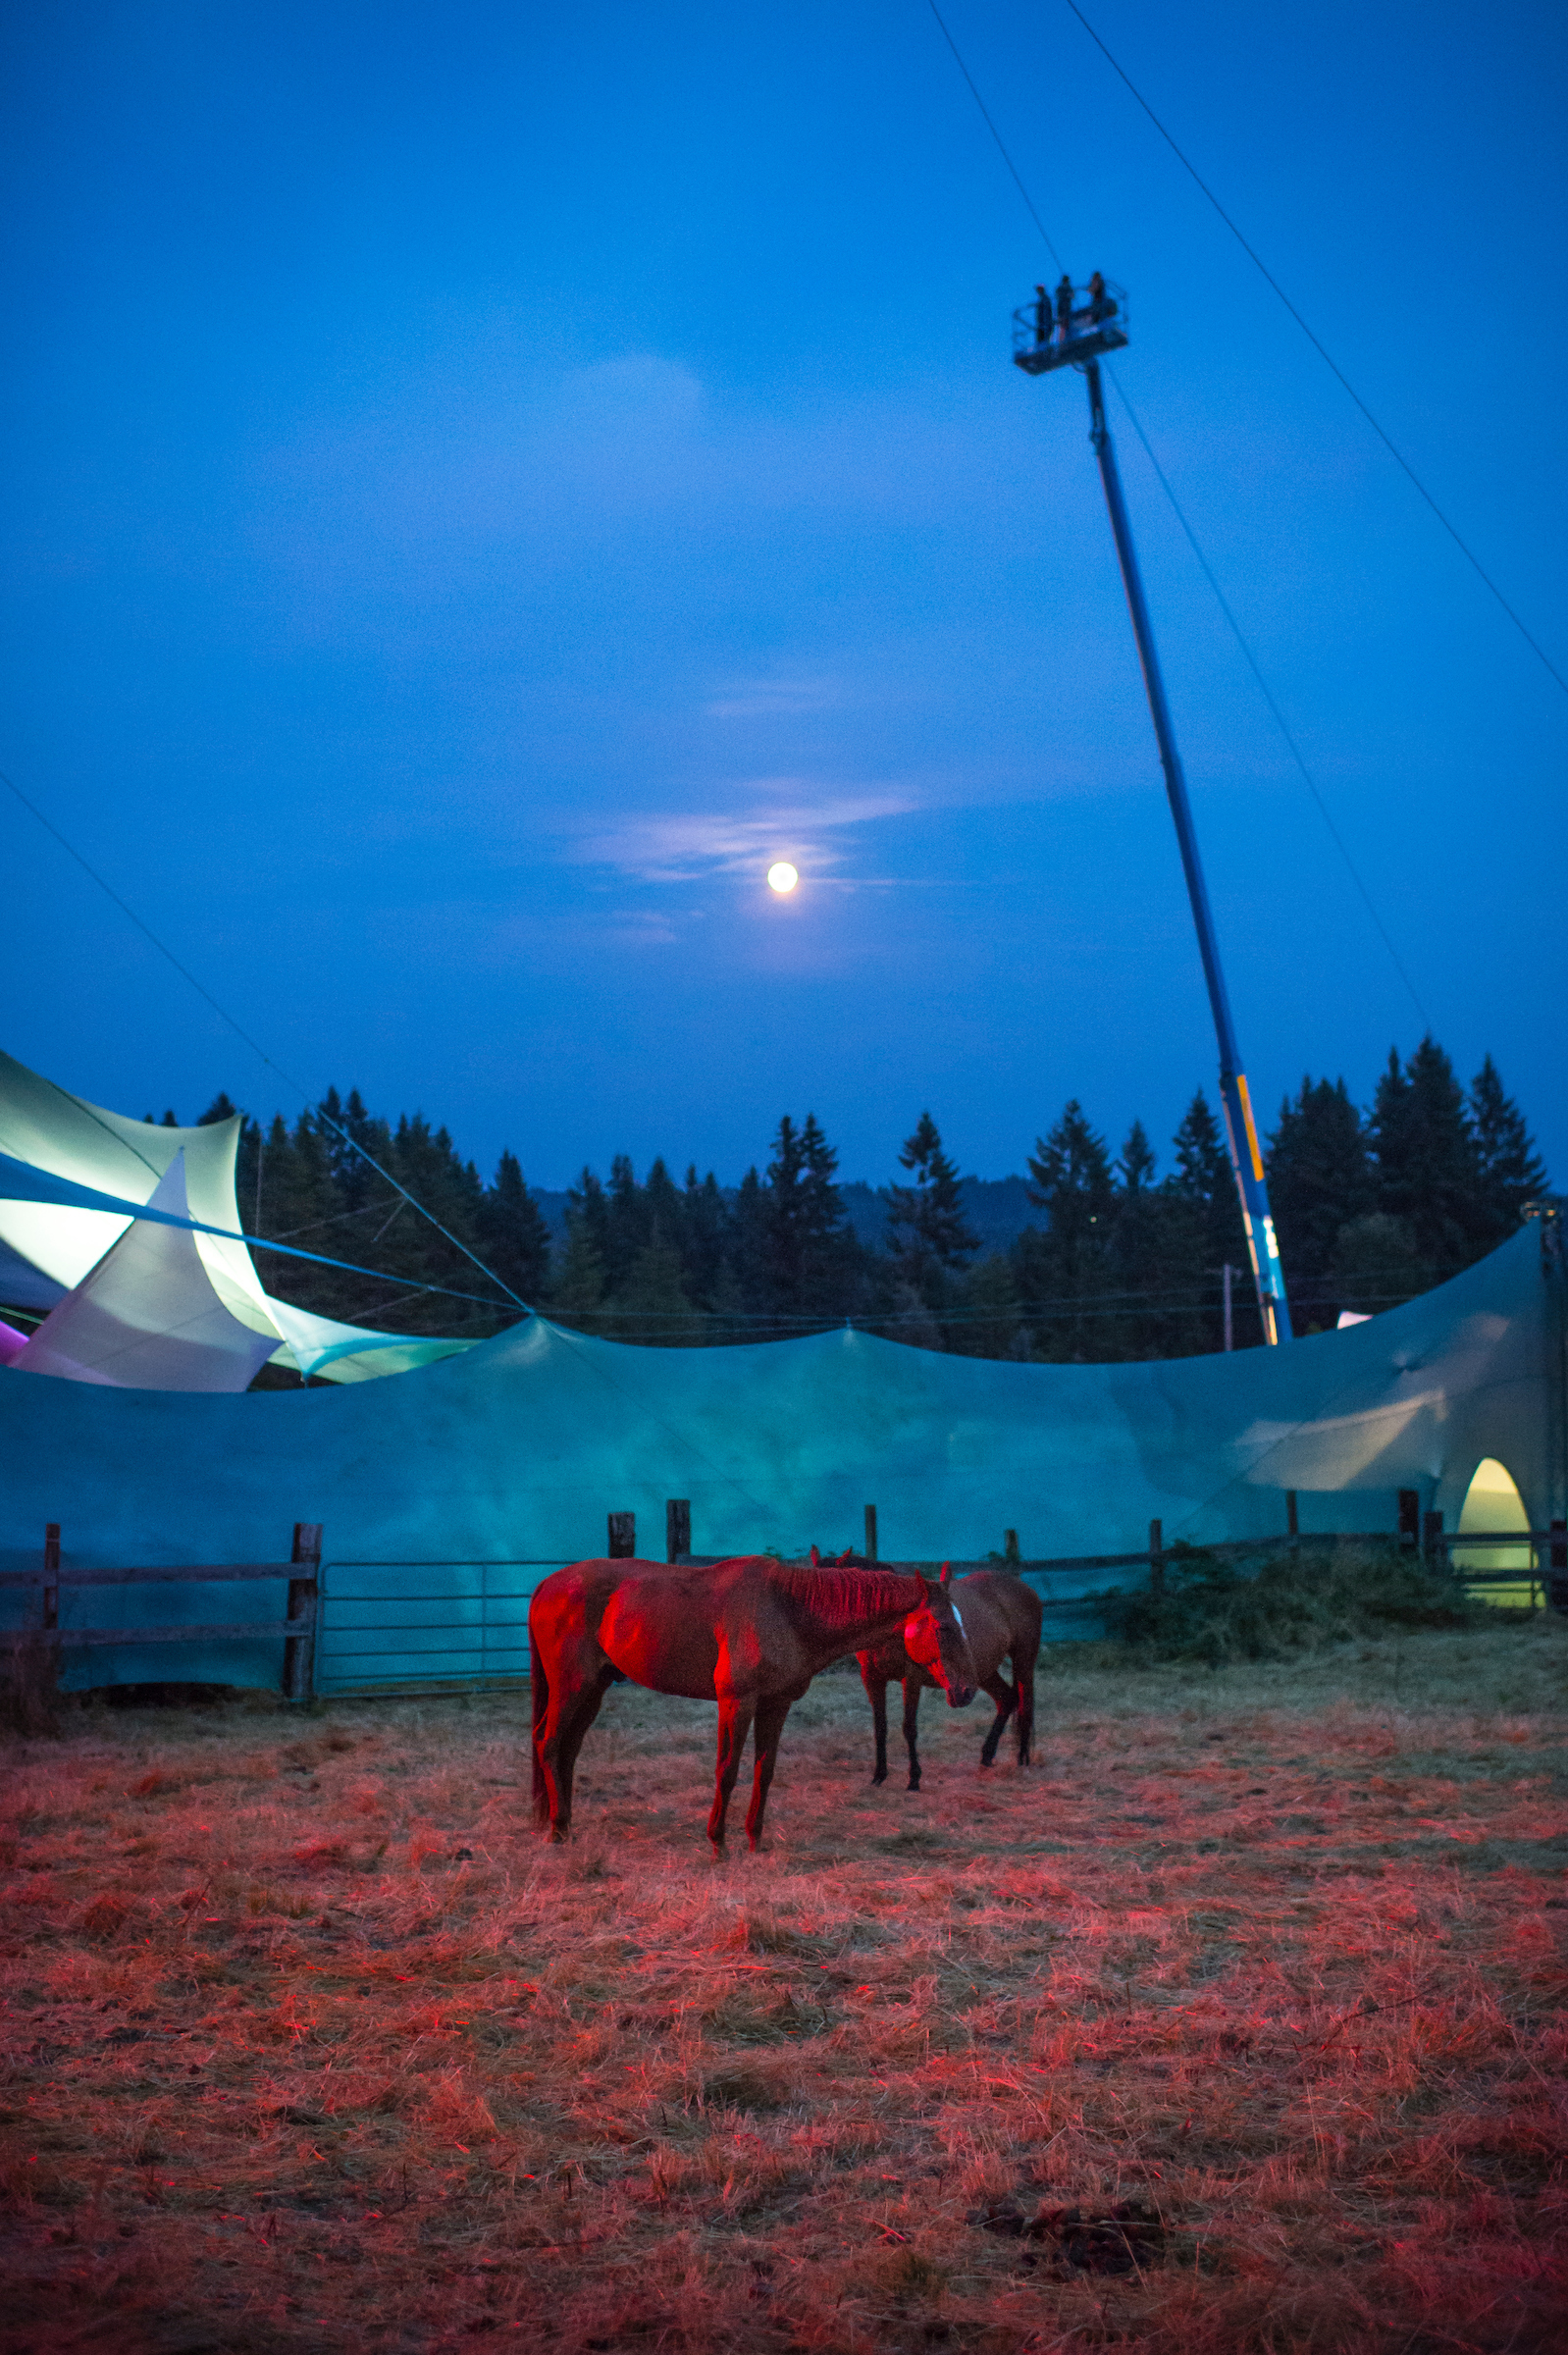 You can't have Pickathon without the horses (photo by Bill)